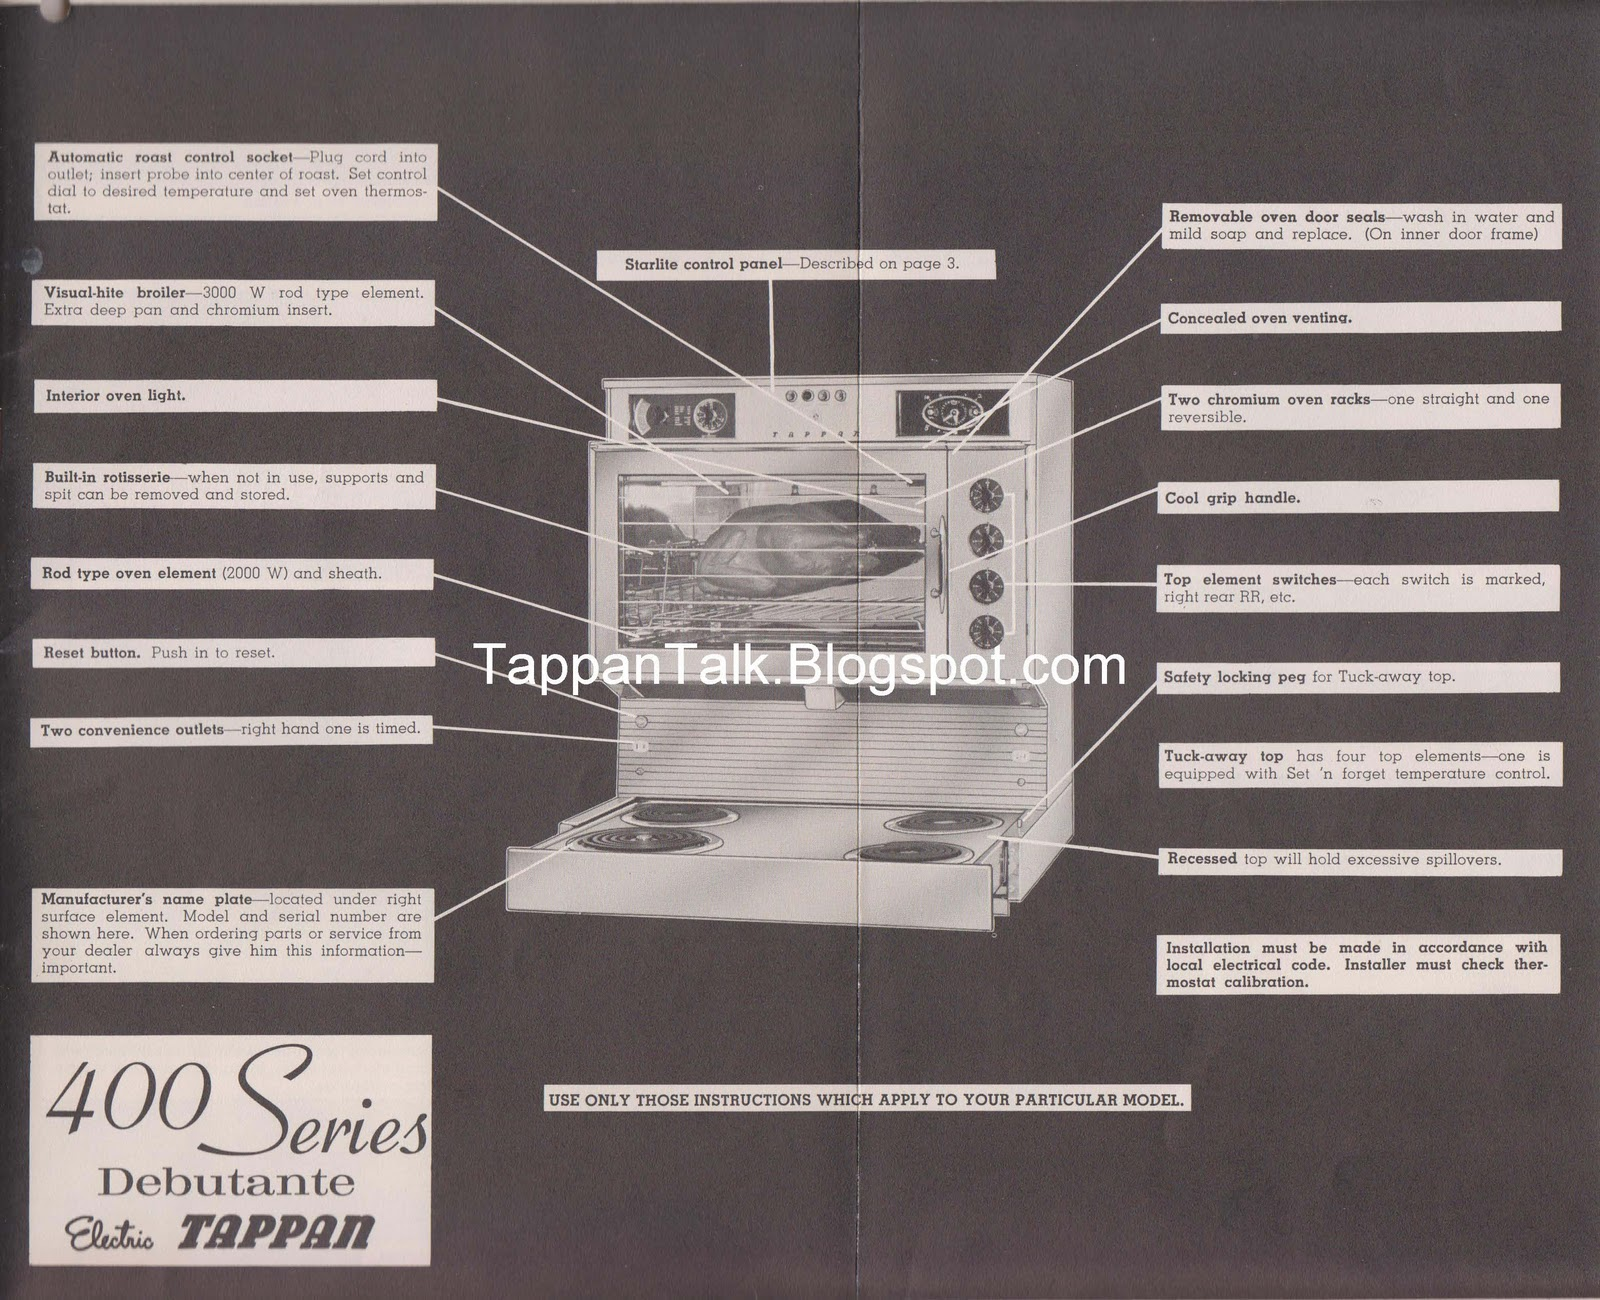 Old Tappan 400 Stove Oven Wiring Diagram Guide And Troubleshooting Jenn Air Top Talk Fabulous Rh Tappantalk Blogspot Com Magic Chef